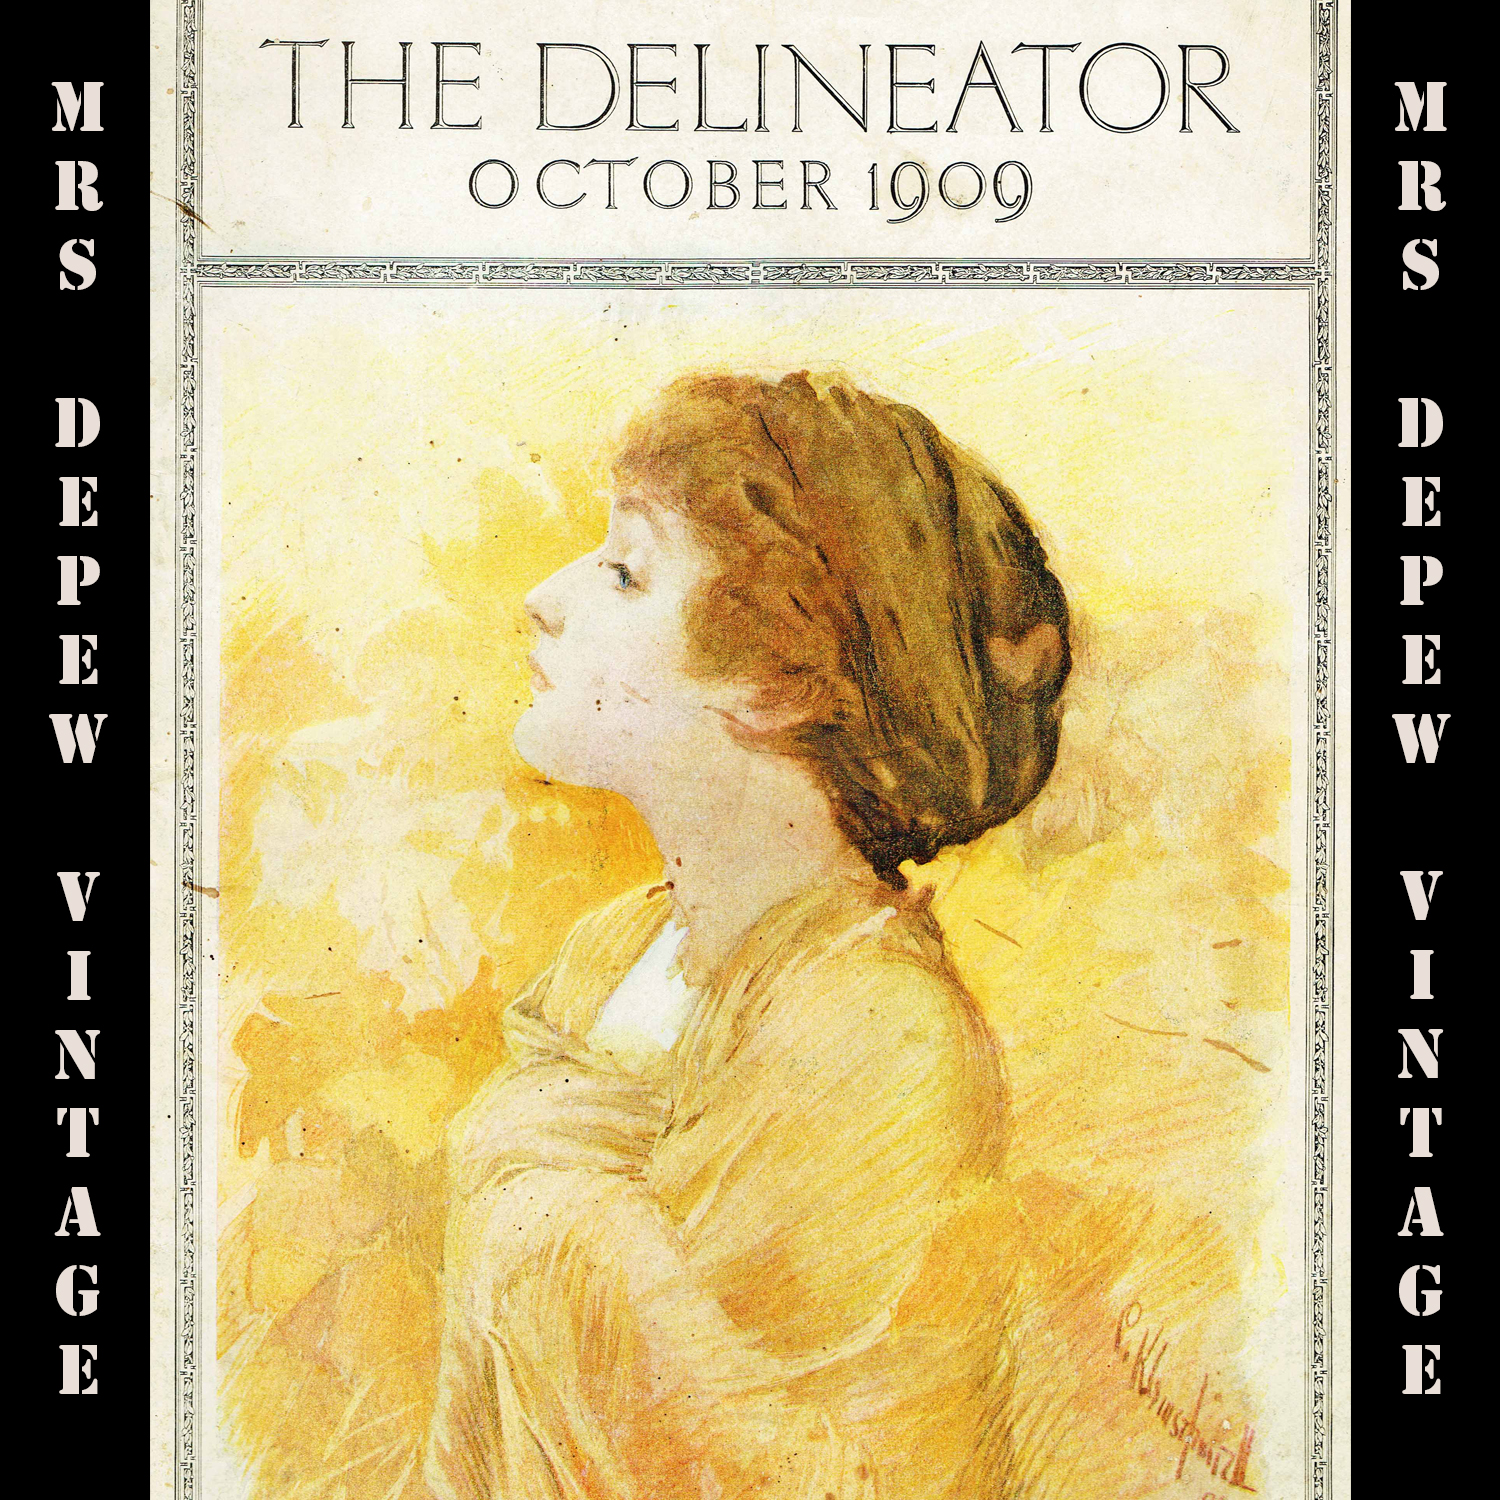 The Delineator October 1909